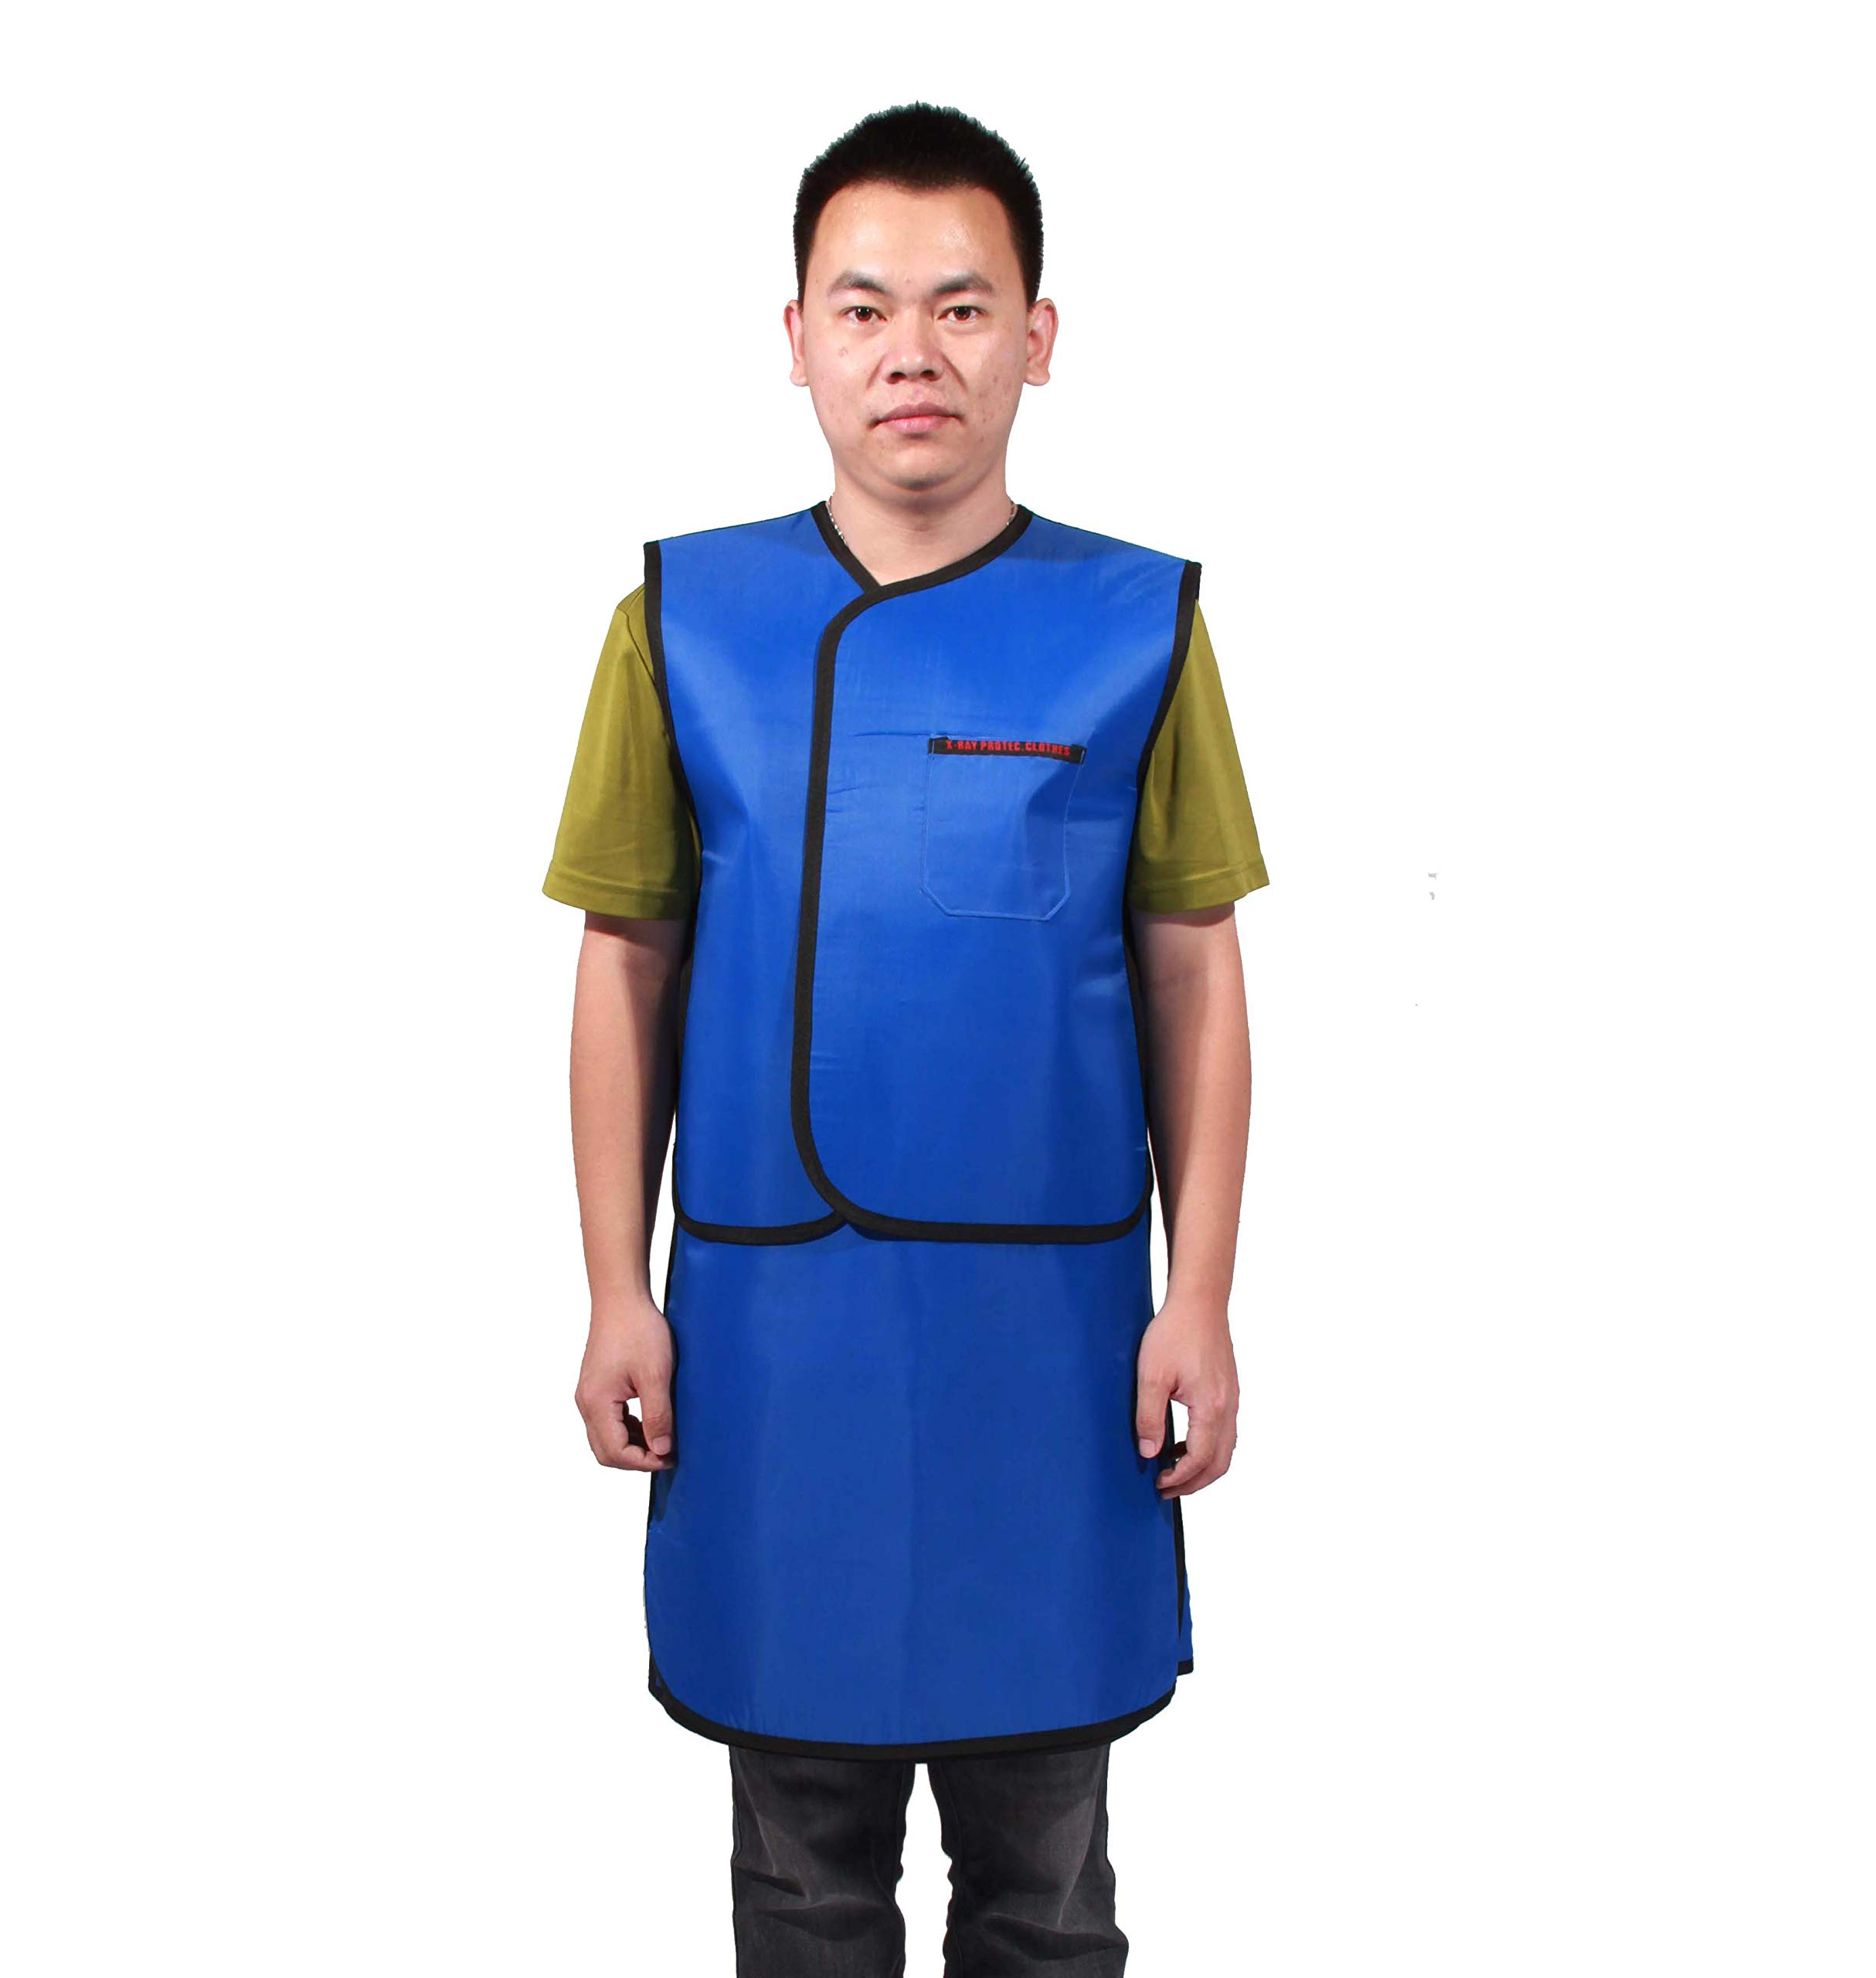 FixtureDisplays X-Ray MRI CT Radiation Protection 33''L 21''W Lead Apron Hook and Loop Closure Vest and Skirt Combo 15450